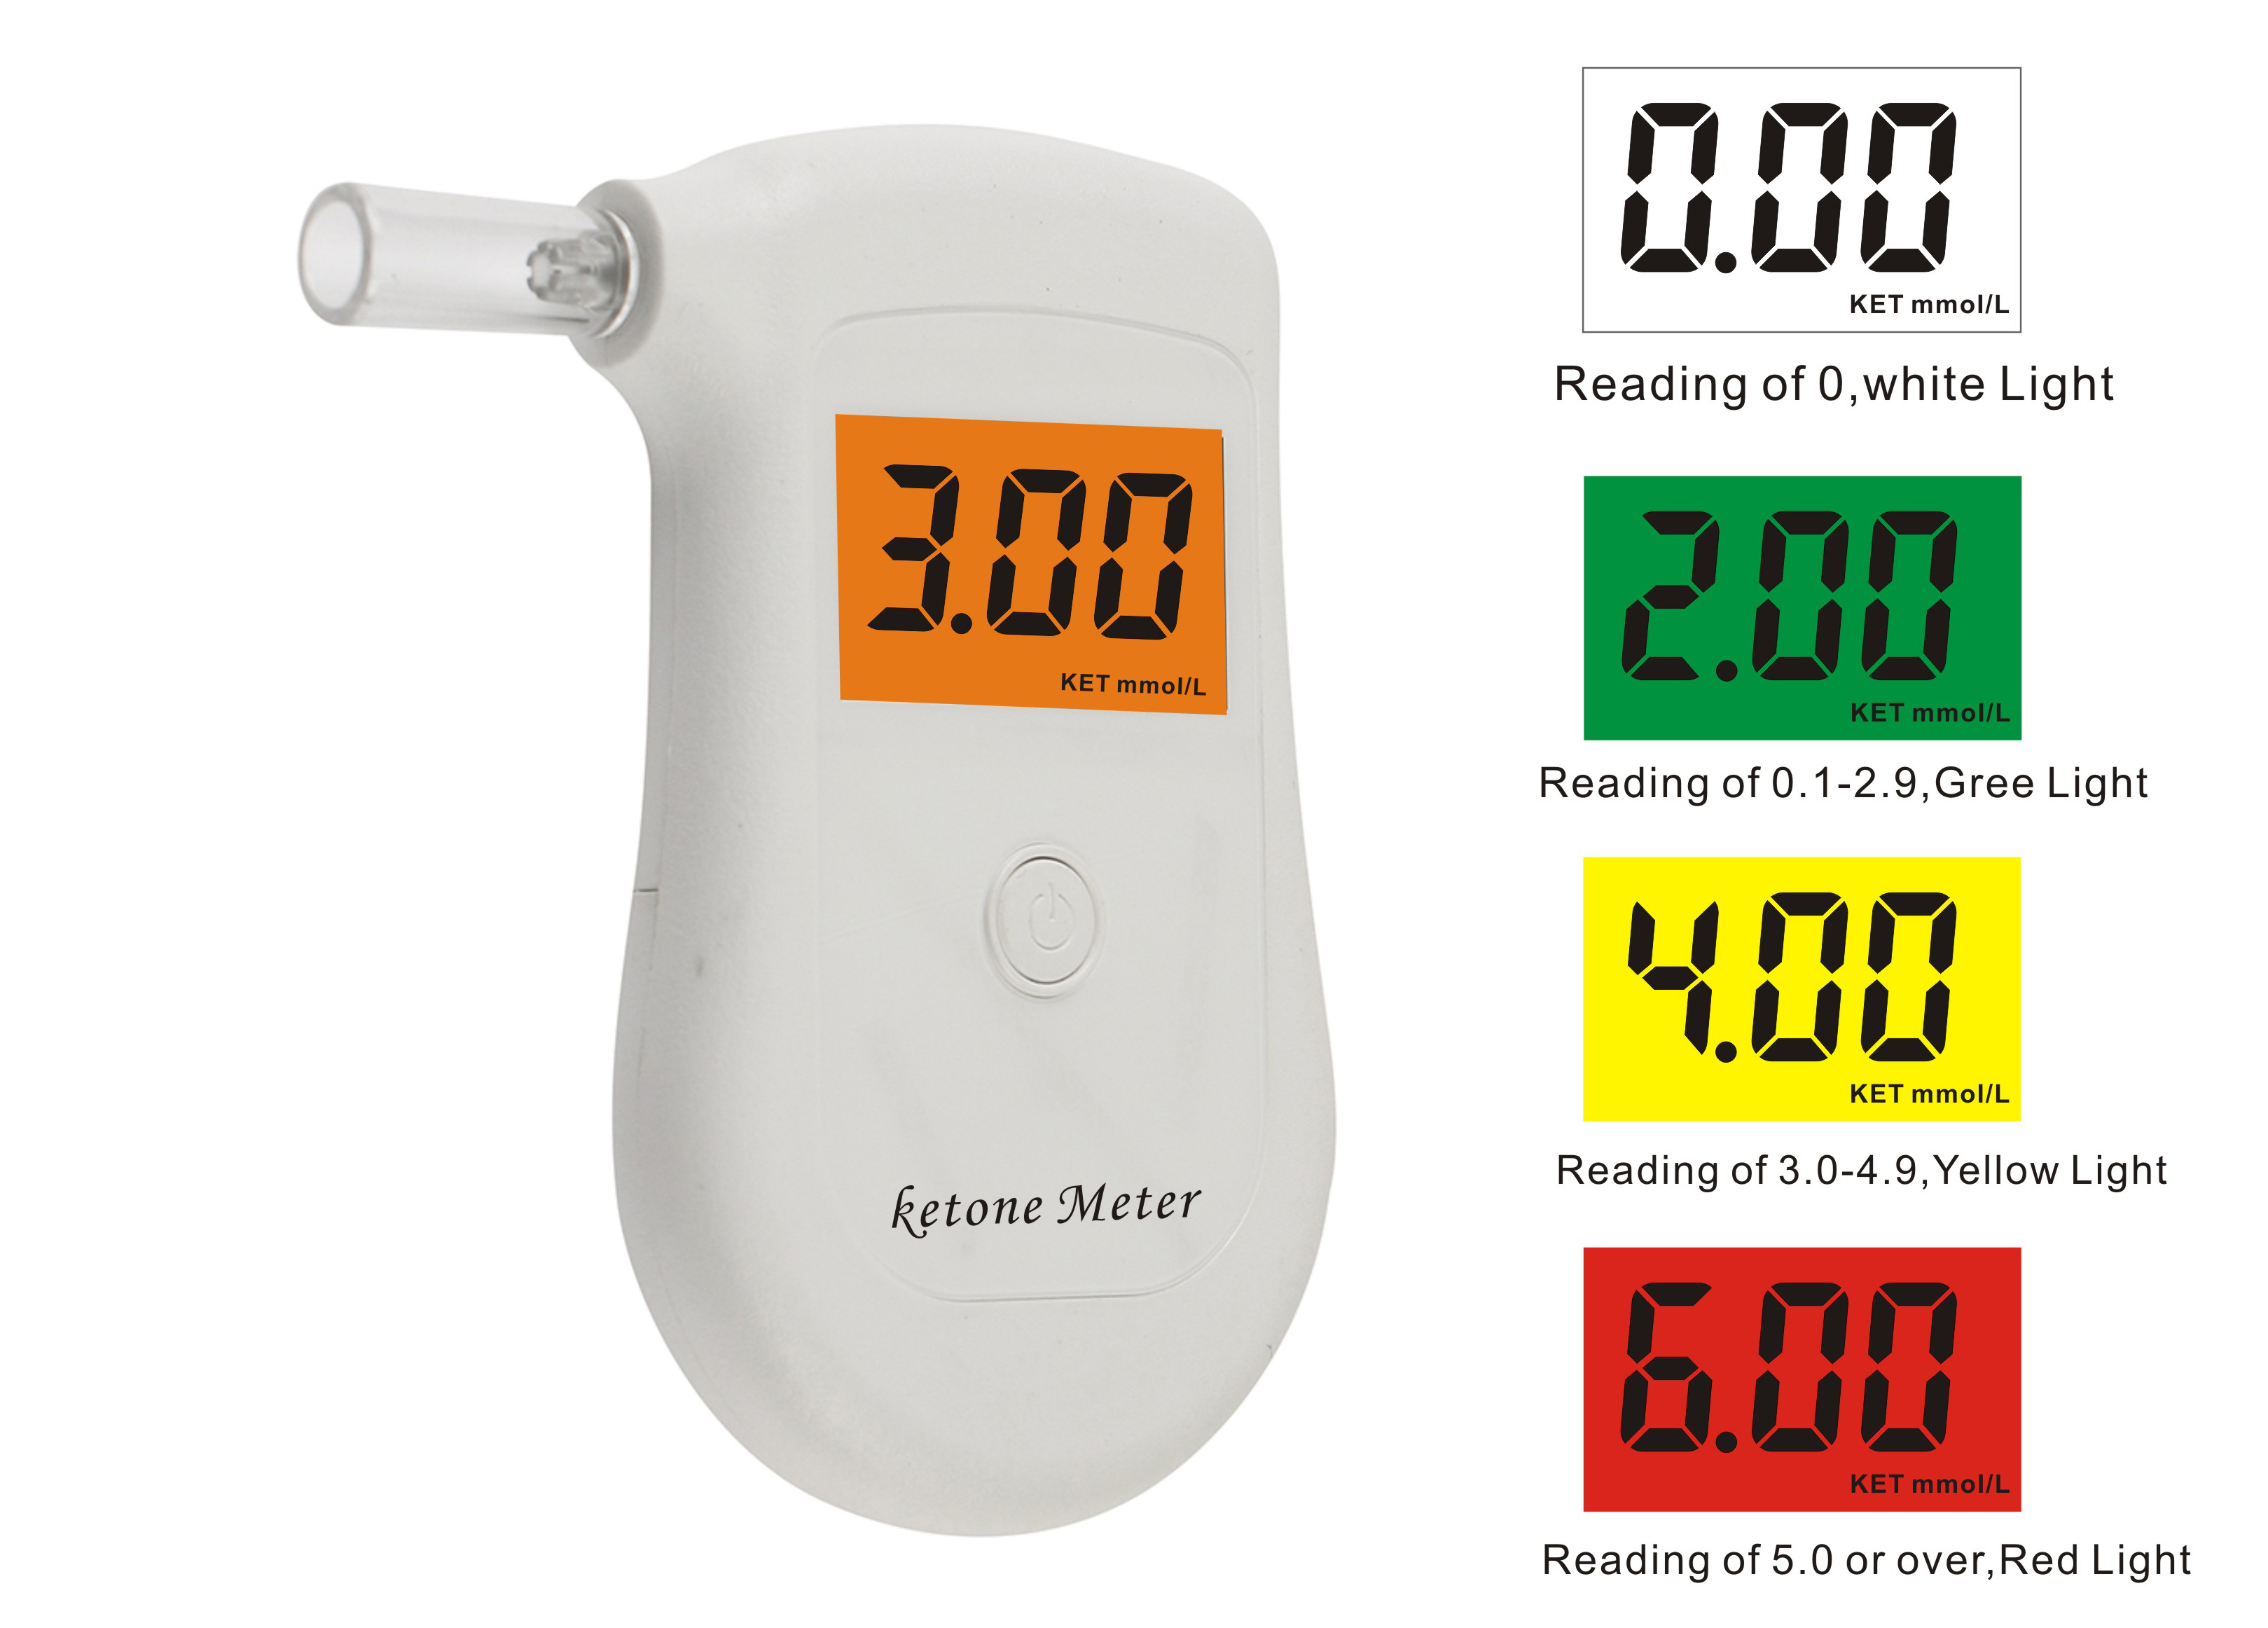 MDK 2019 USA amazon hot selling keto meter breathalyzer detects Ketones in Breath for Ketogenic,ketosis monitor